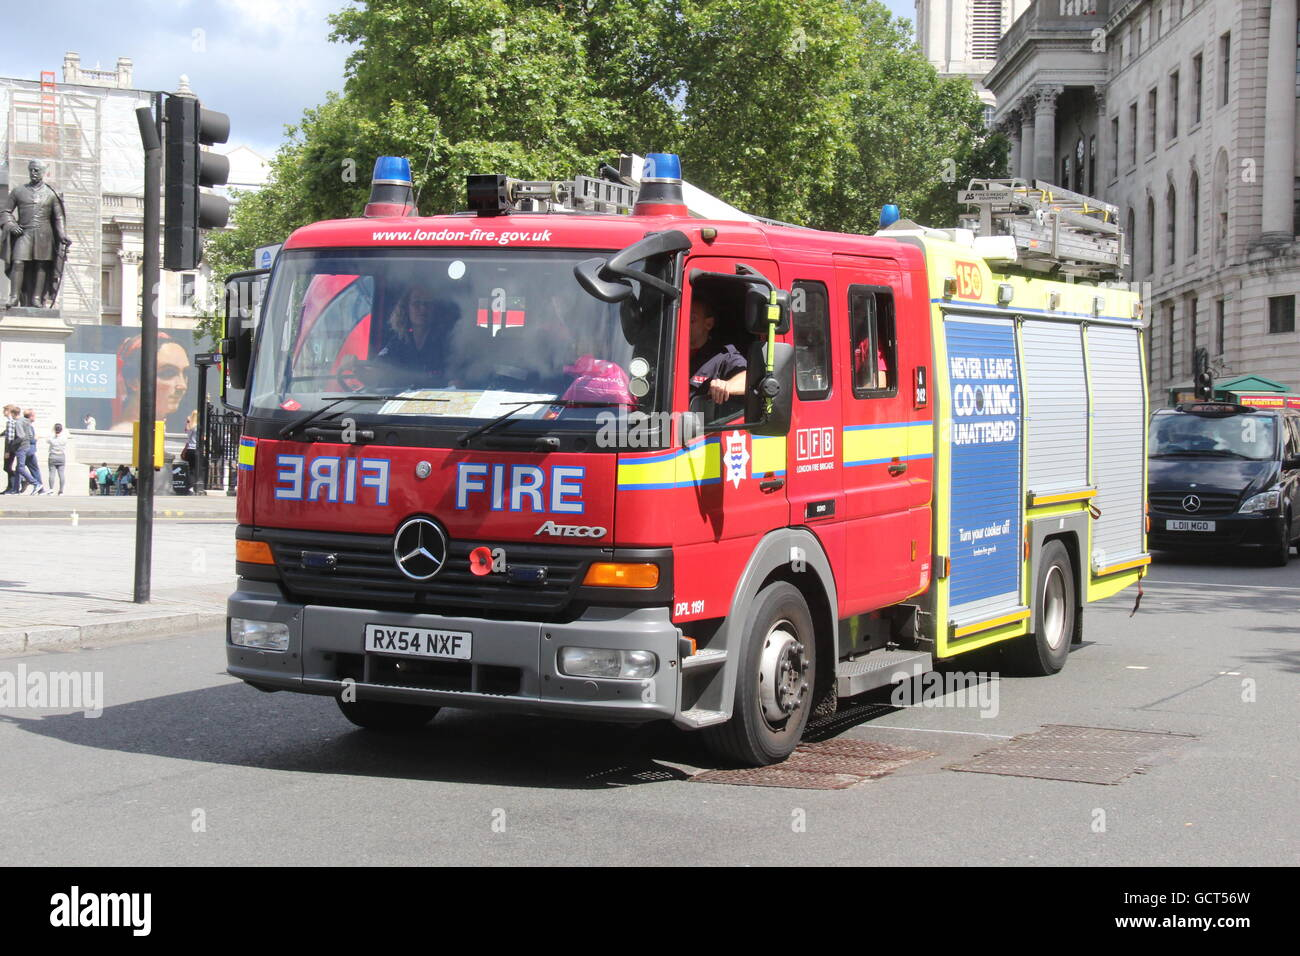 A SUNNY NEARSIDE LANDSCAPE VIEW OF A LONDON FIRE BRIGADE MERCEDES FIRE TRUCK PASSING THROUGH TRAFALGER SQUARE - Stock Image